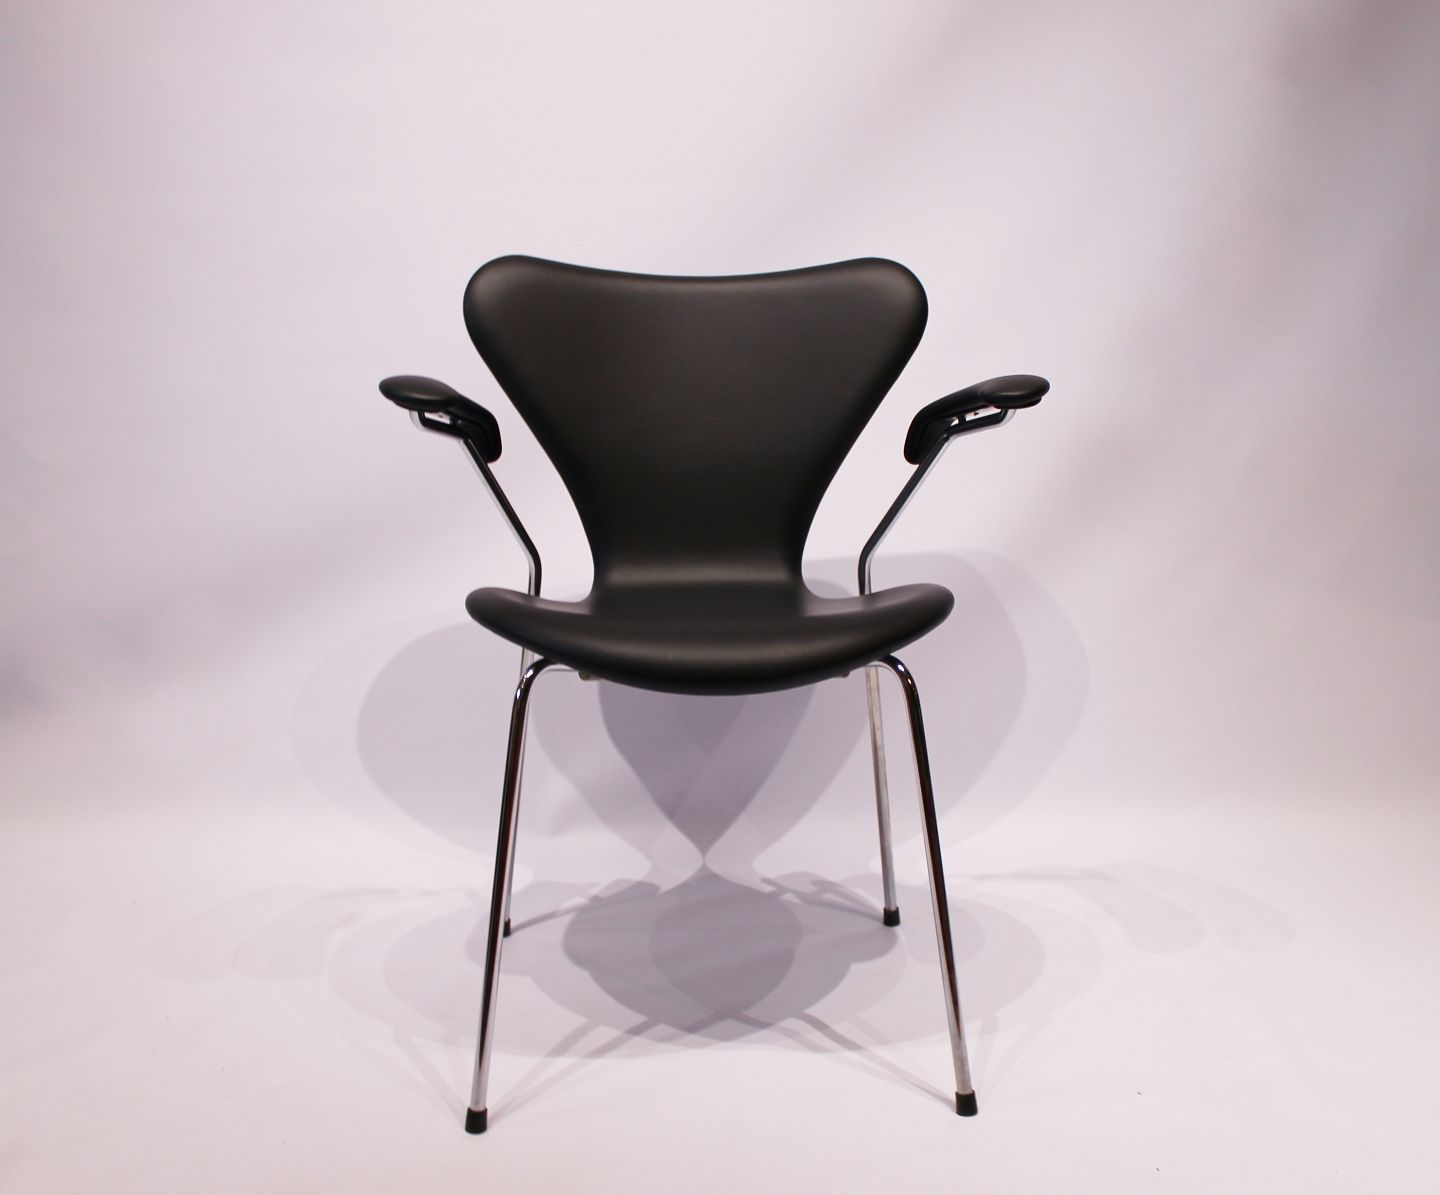 Seven chair, model 3207, with armrest in black classic leather by Arne Jacobsen and Fritz Hansen. 5000m2 showroom.